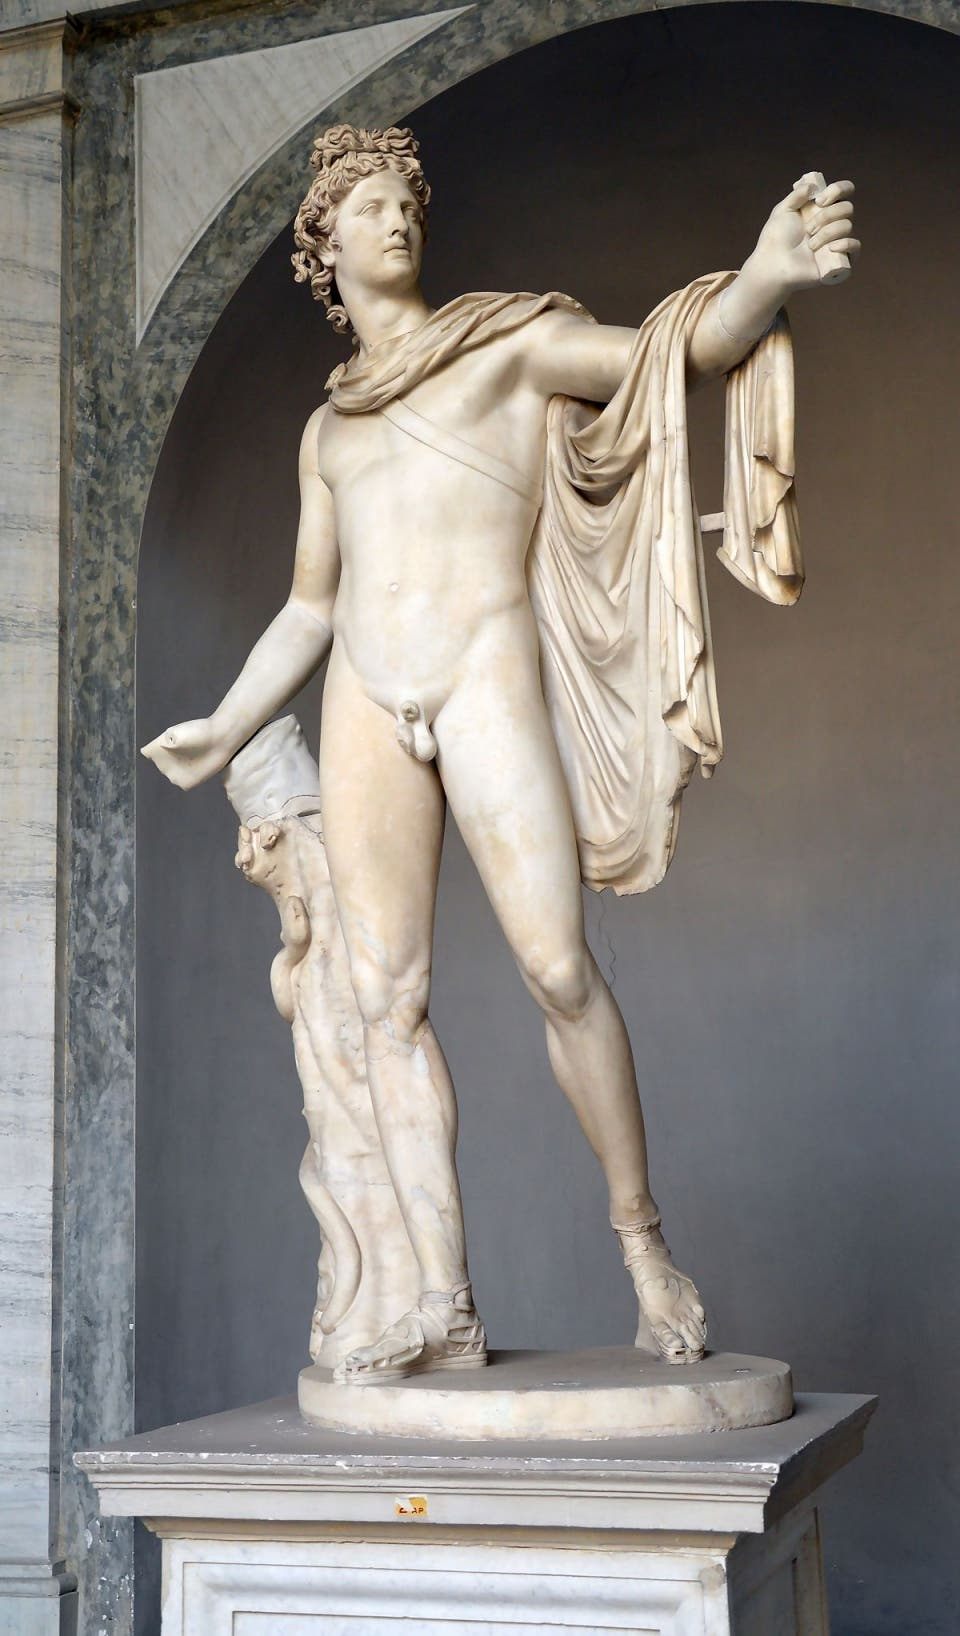 apollon, dieu, statue